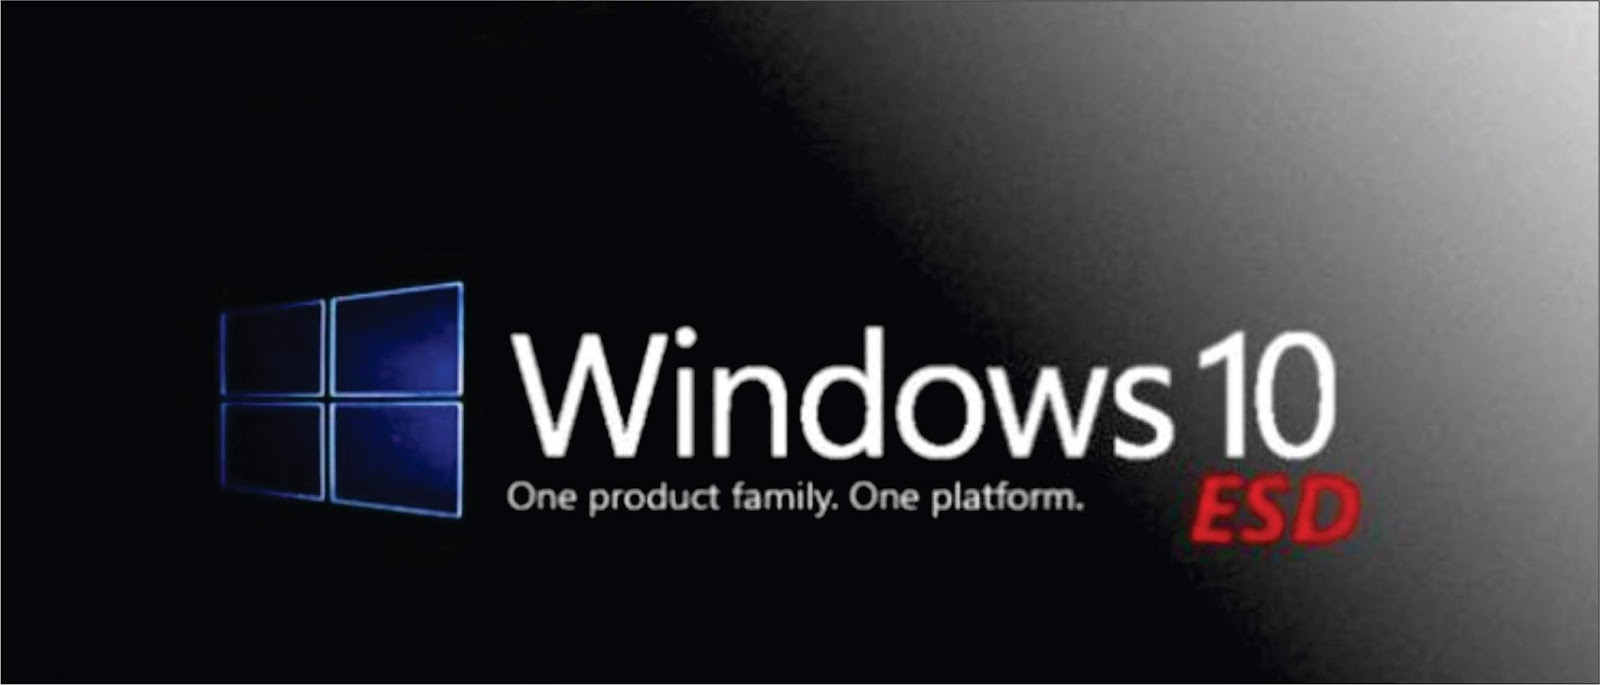 Windows 10 LATEST UPDATE ISO (RS5) All in One Jan 2019 with